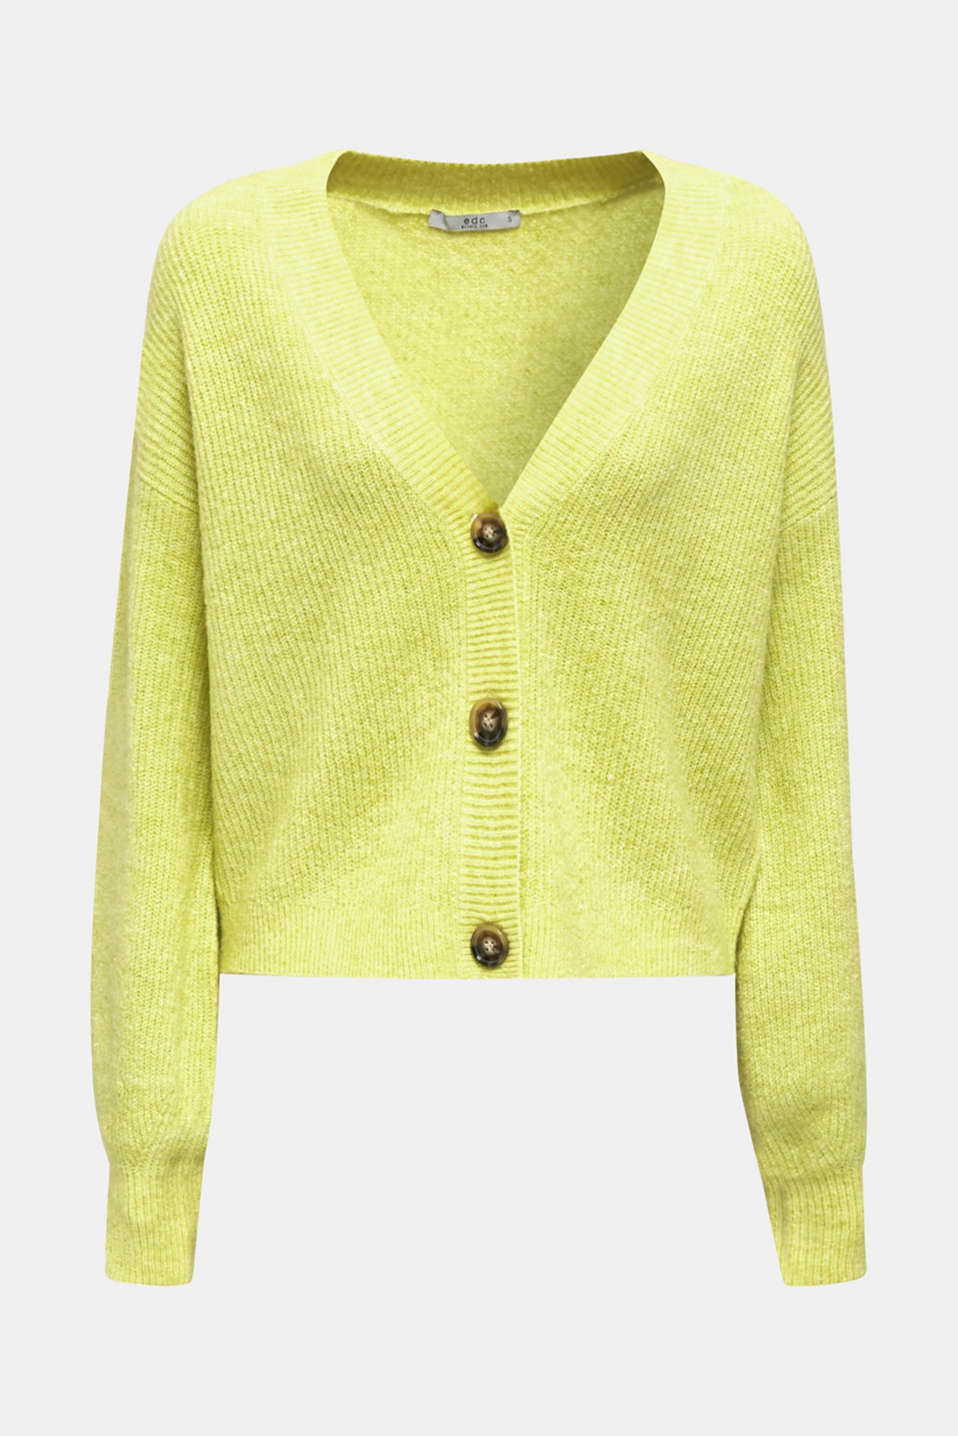 NEON short, boxy stretch cardigan, LIME YELLOW, detail image number 5